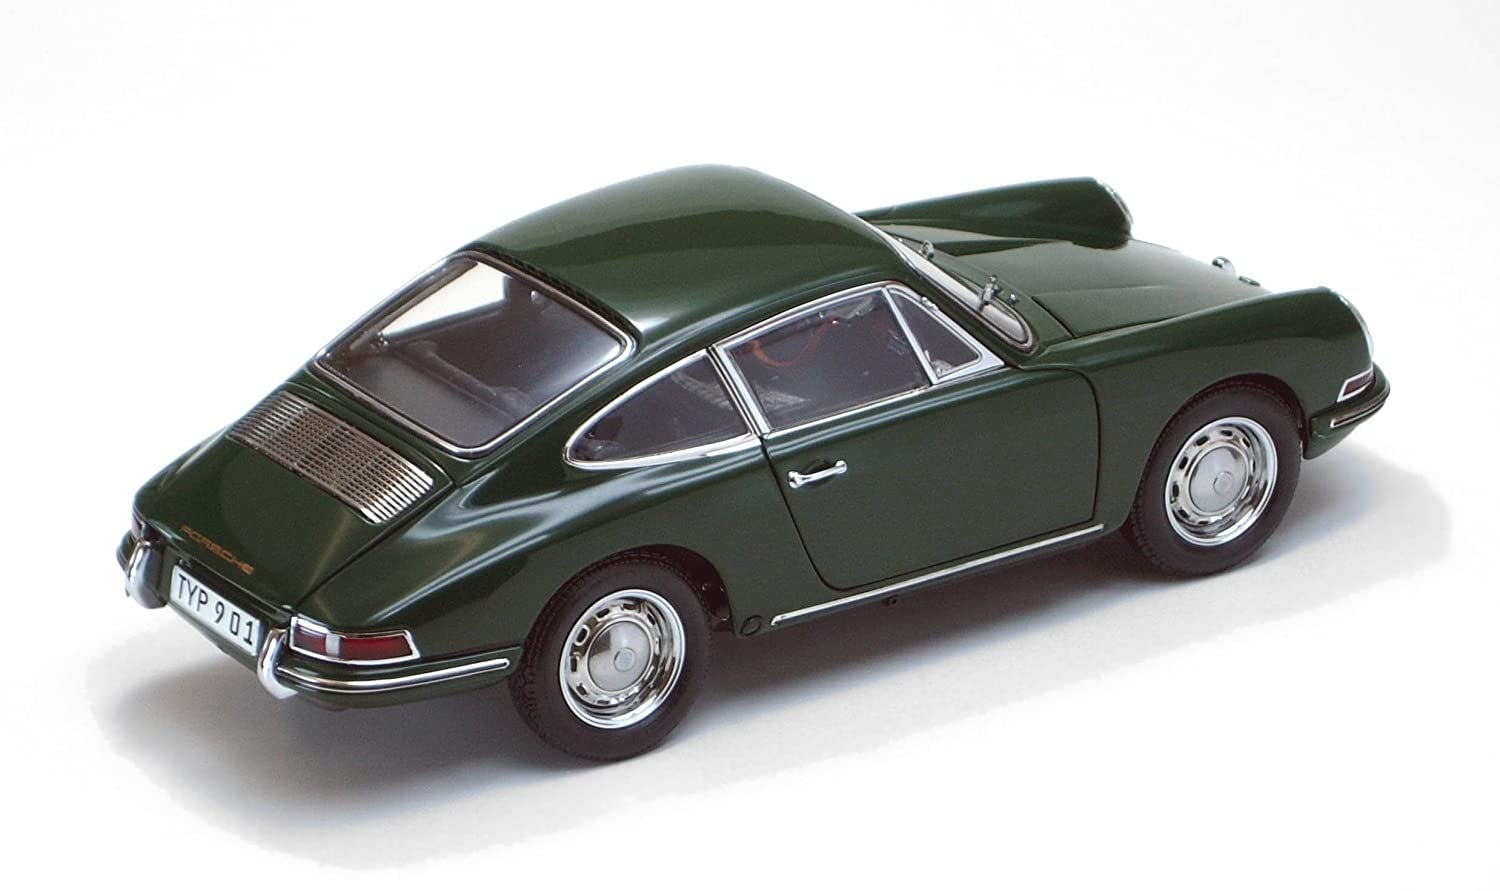 Amazon cmc porsche 901 coup 1964 irish green limited edition amazon cmc porsche 901 coup 1964 irish green limited edition 118th scale toys games vanachro Gallery